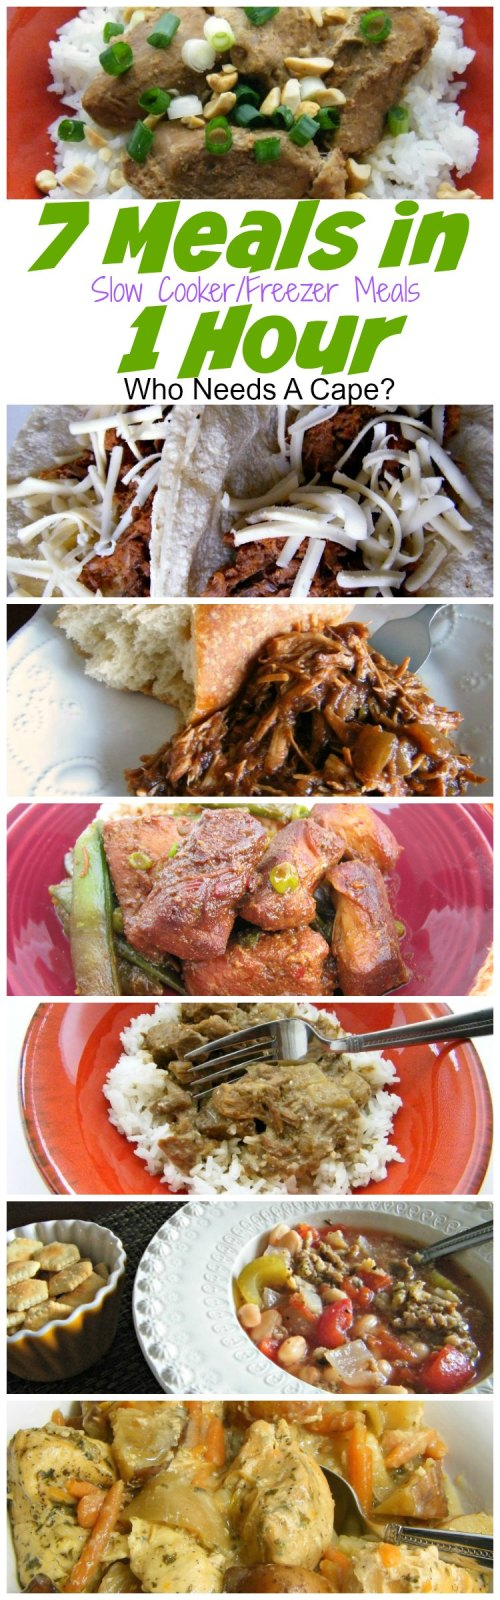 7 Meals in 1 Hour Slow Cooker Crockpot Freezer Meals. Save money by prepping, bagging and freezing 7 delicious slow cooker meals in 1 hour.